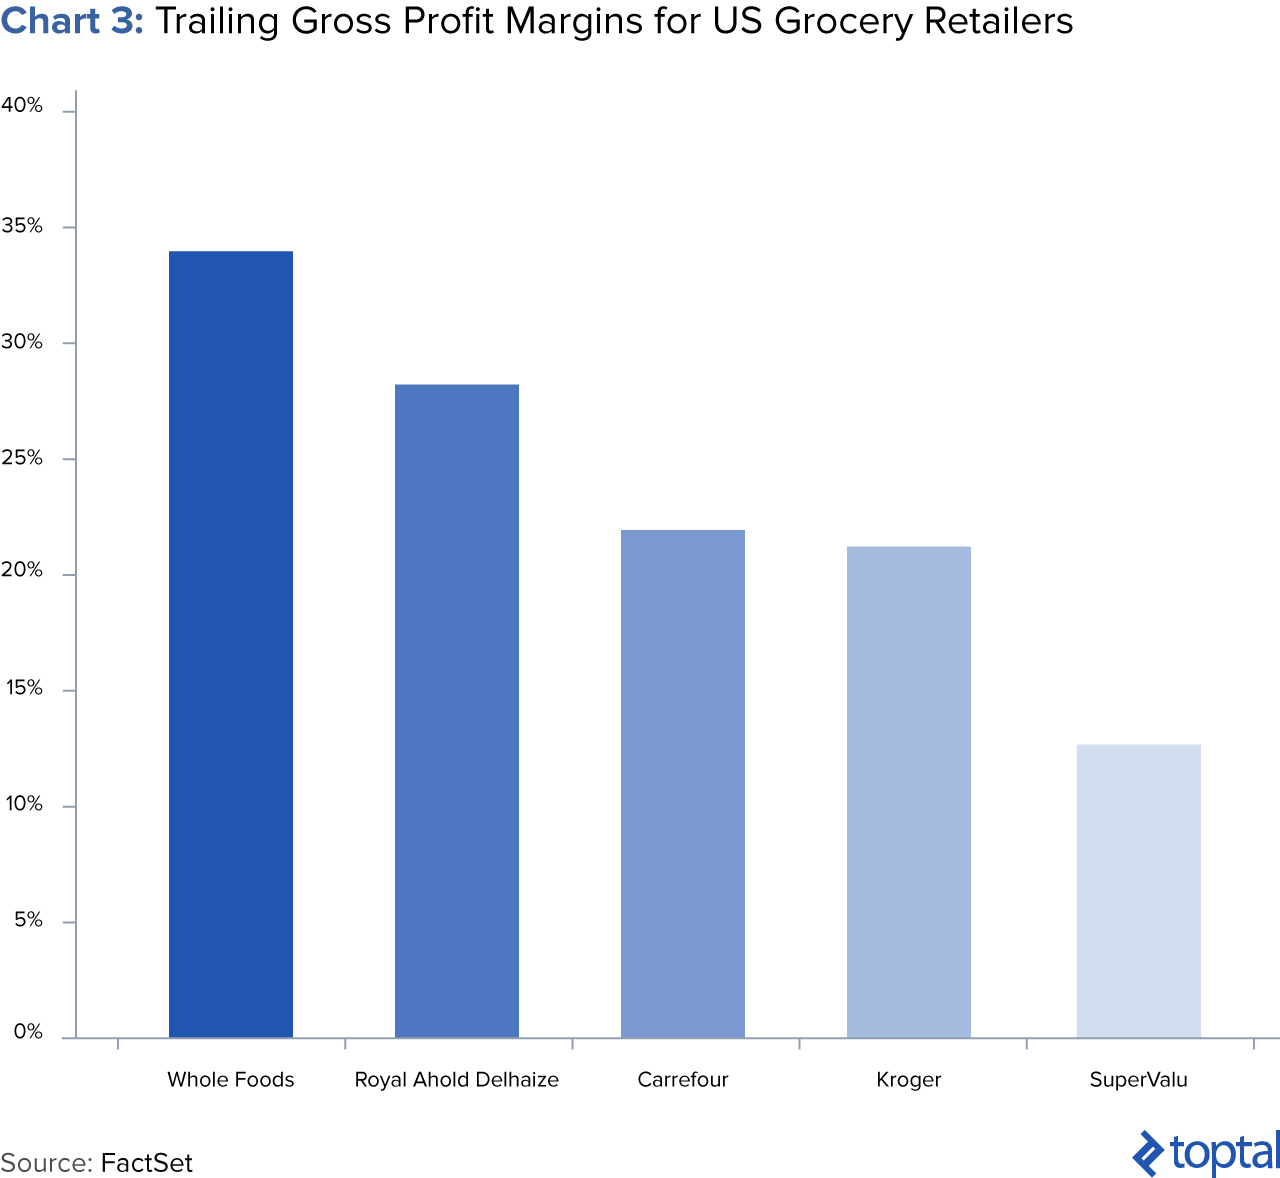 Chart 3: Trailing Gross Profit Margins for US Grocery Retailers